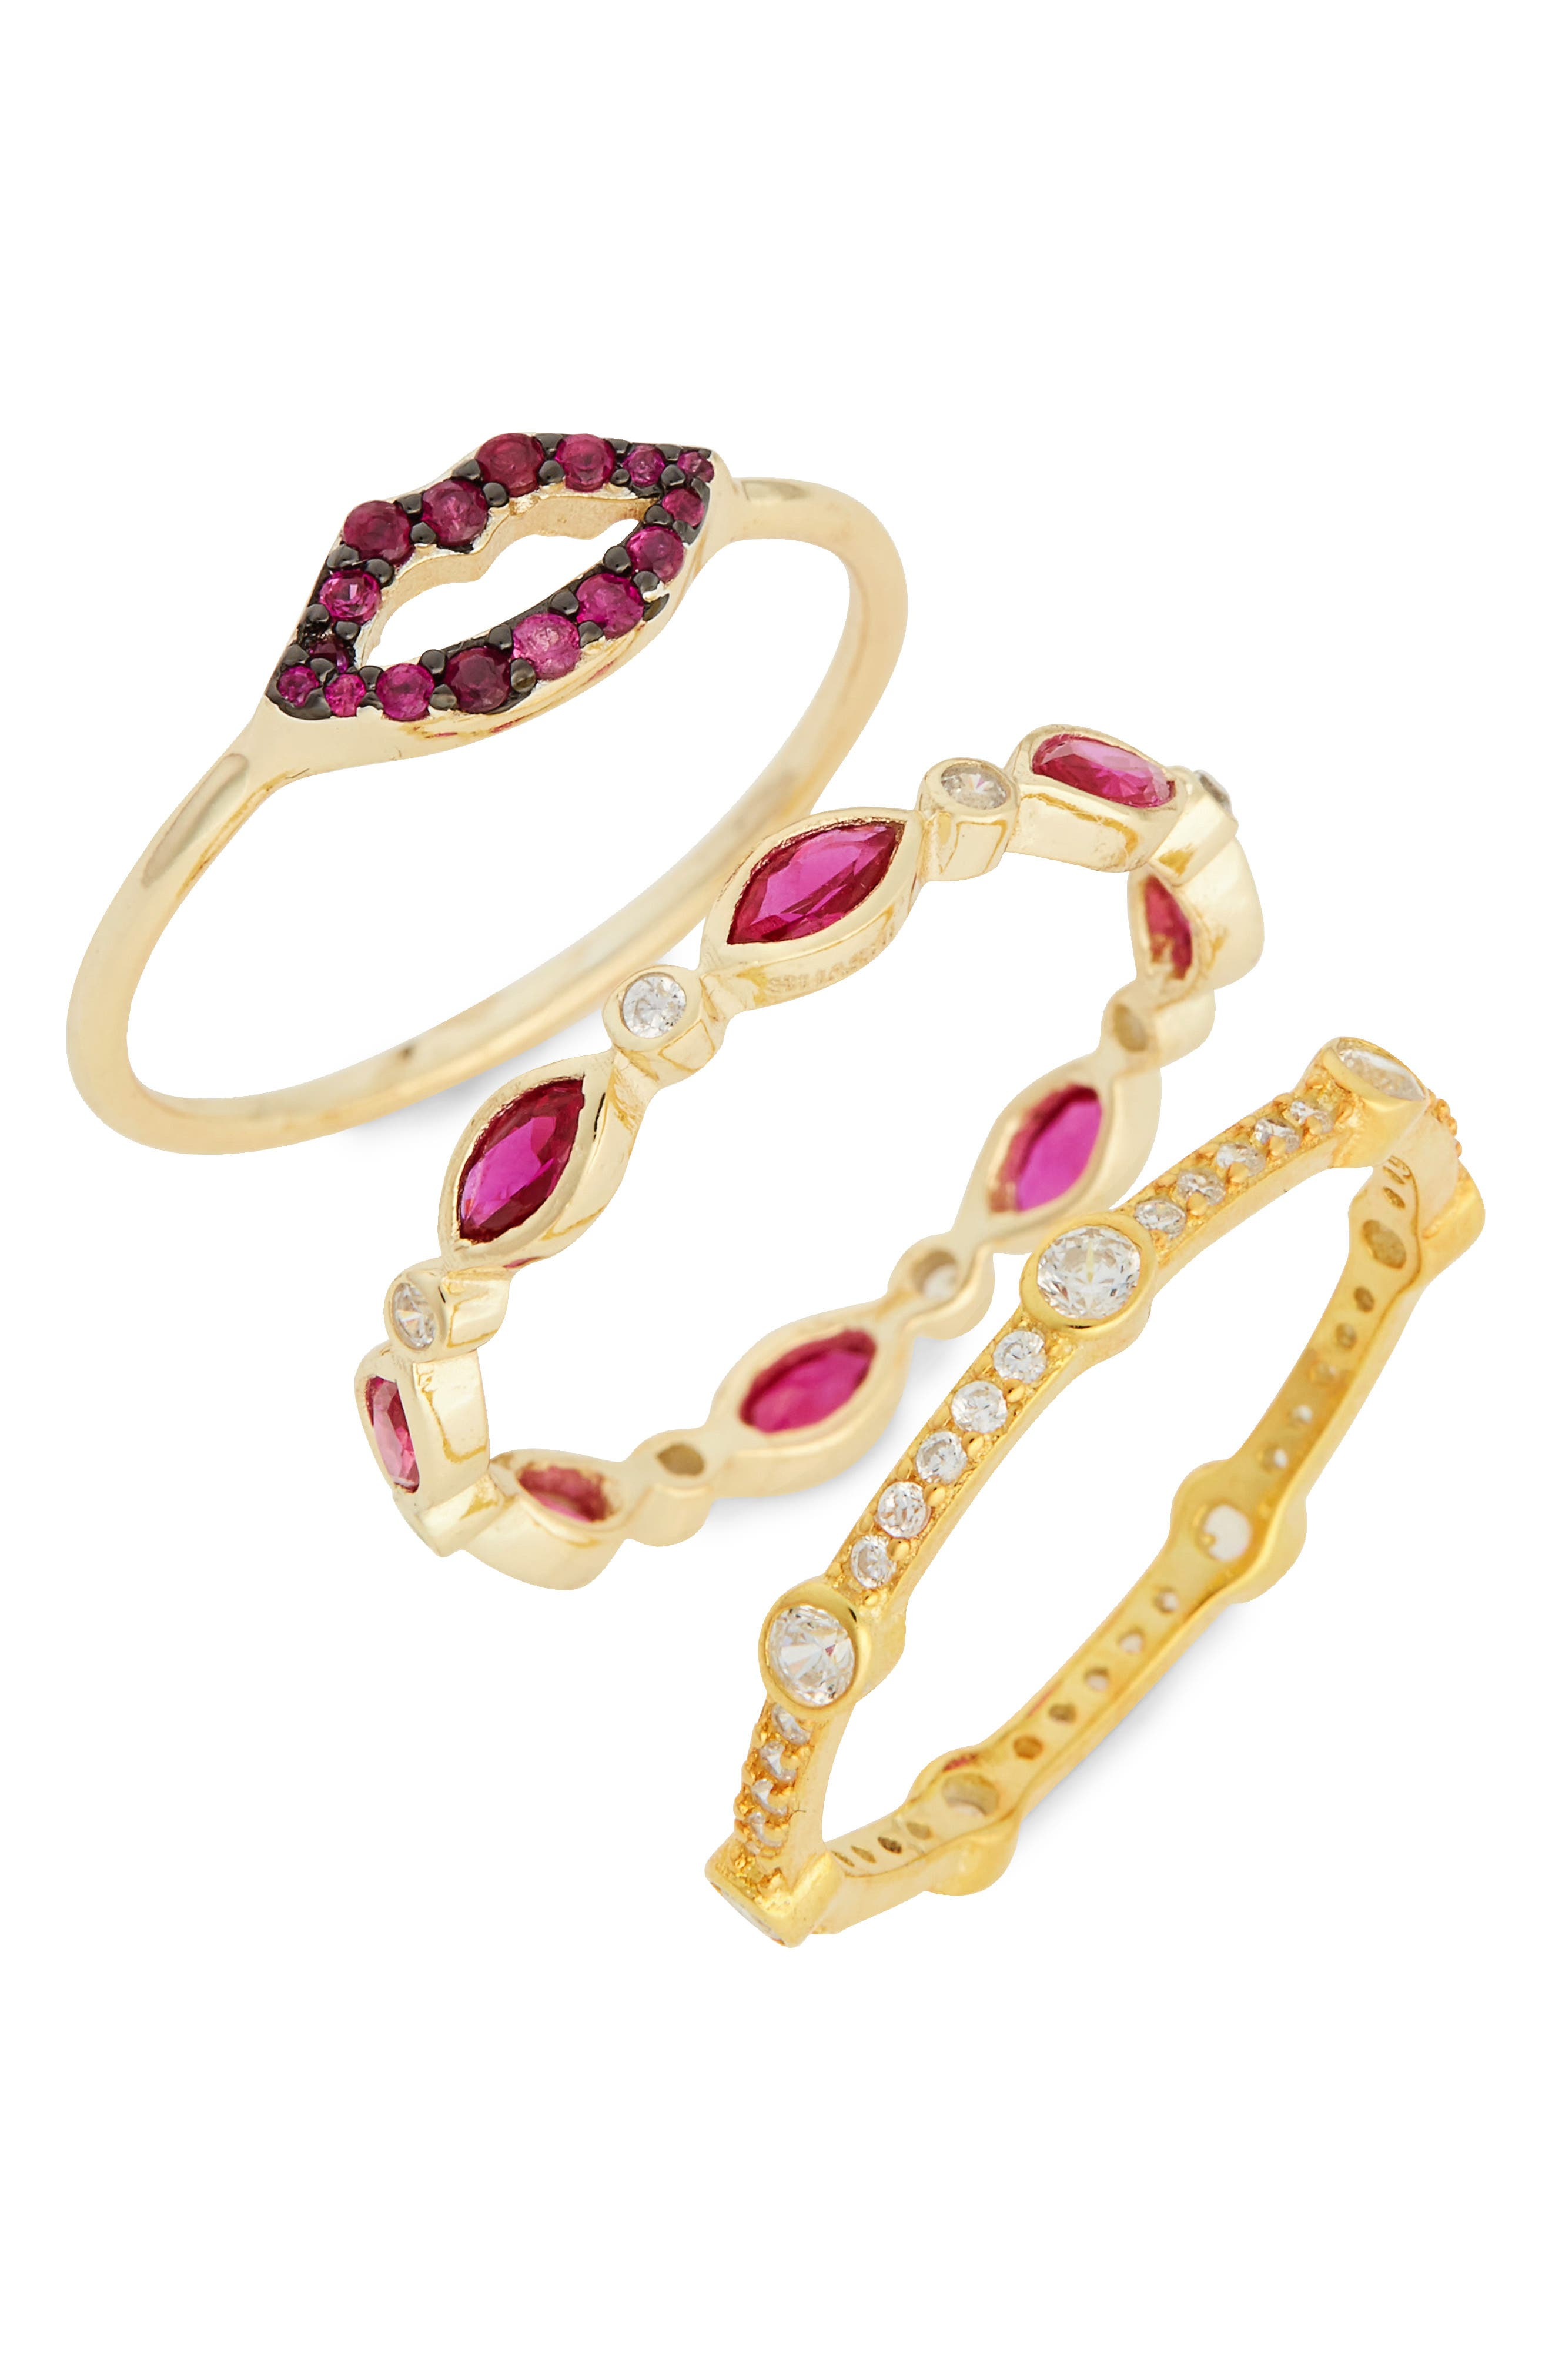 Katie Set of 3 Crystal Vermeil Rings,                         Main,                         color, Yellow Gold/ Ruby